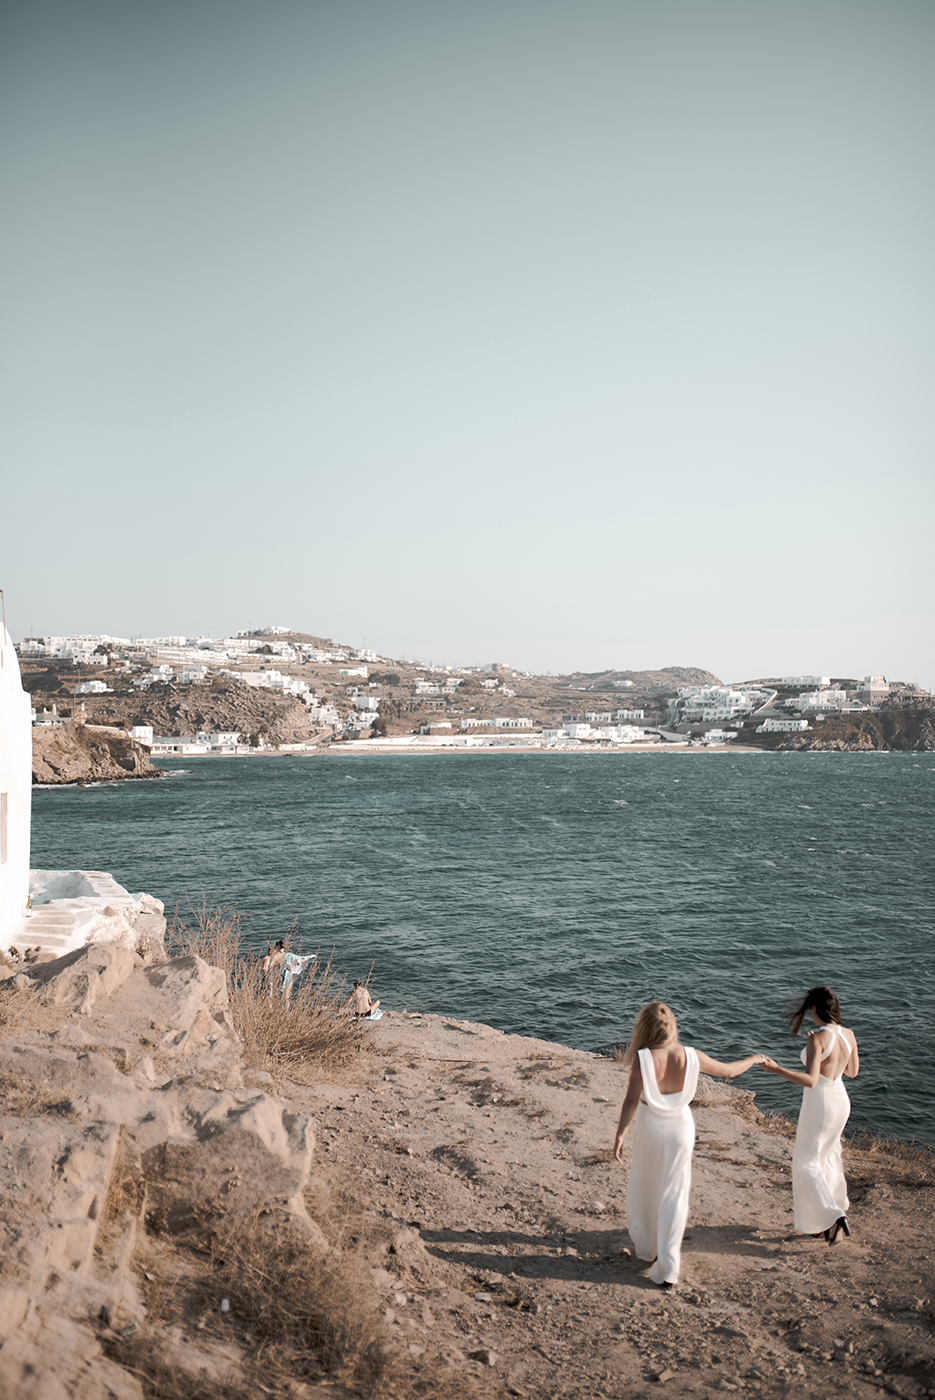 Kirill-Samarits-Wedding-Photography-Greece-AThens-Mykonos-Santorini-Same-Sex-Wedding-Photographer-Candice-Mykonos (6)